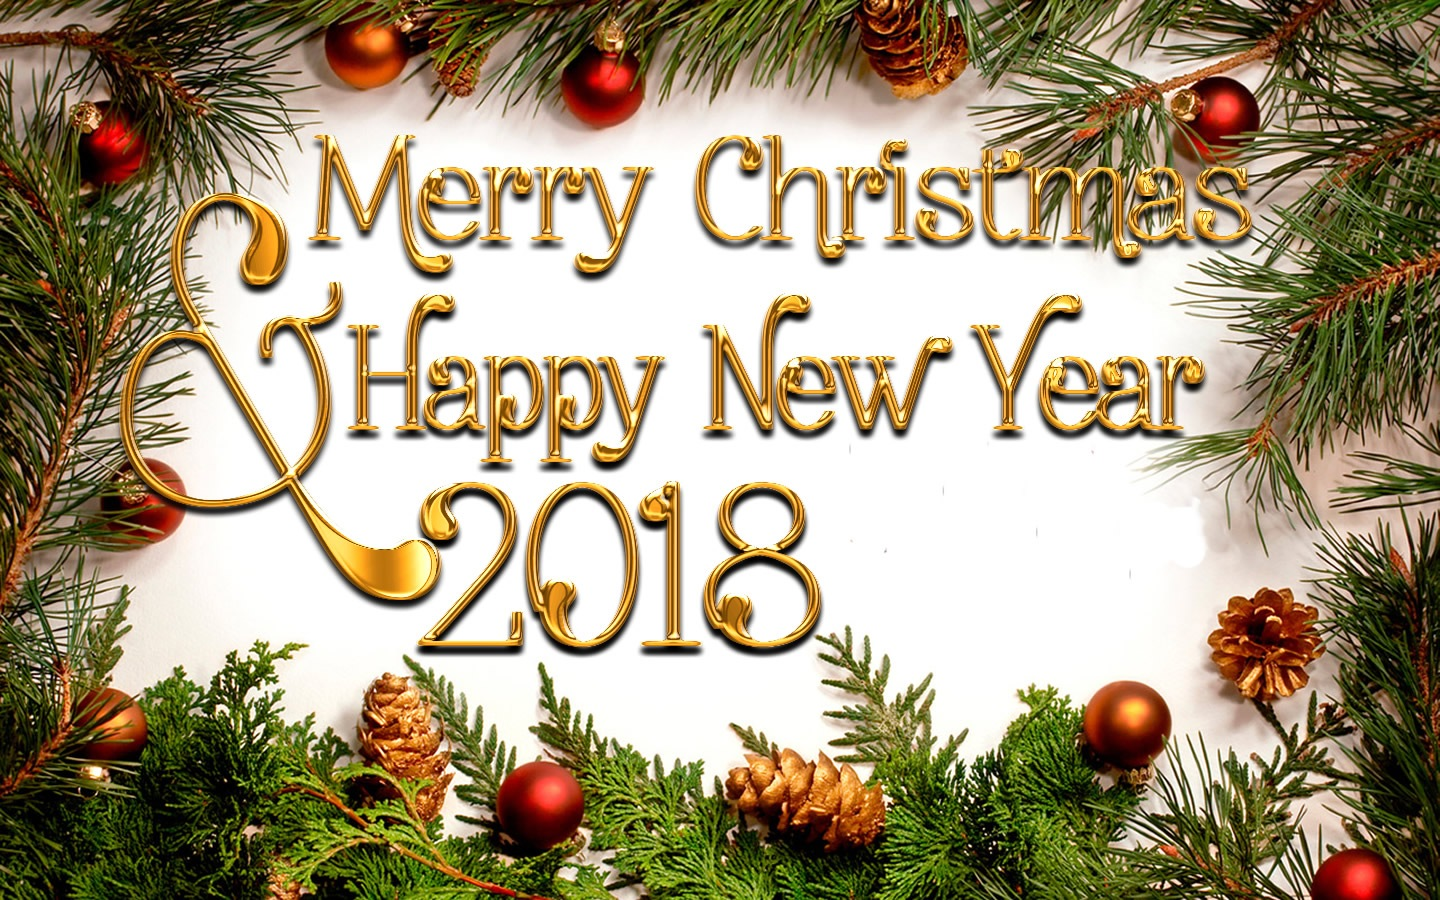 merry christmas happy new year 2018 homemerry christmas happy new year 2018